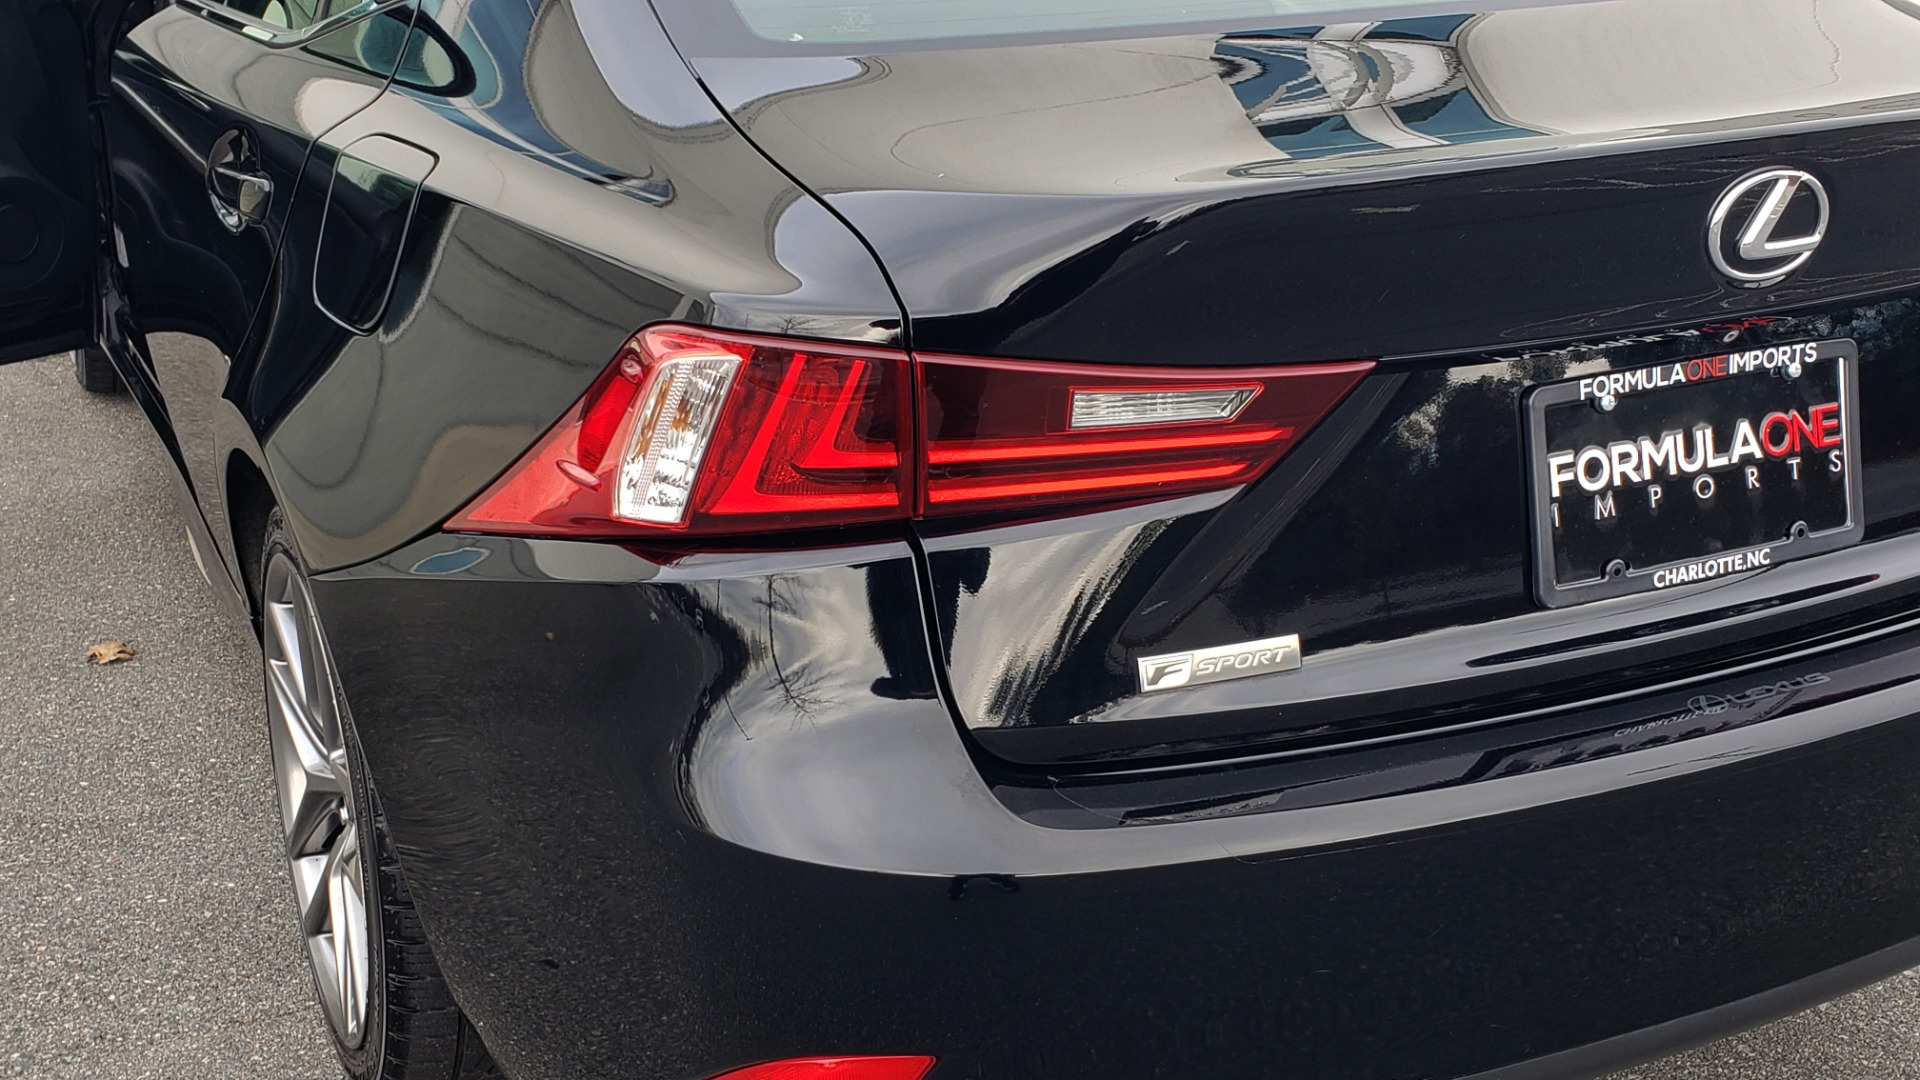 Used 2015 Lexus IS 250 F-SPORT / BLIND SPOT MON / SUNROOF / REARVIEW for sale Sold at Formula Imports in Charlotte NC 28227 26